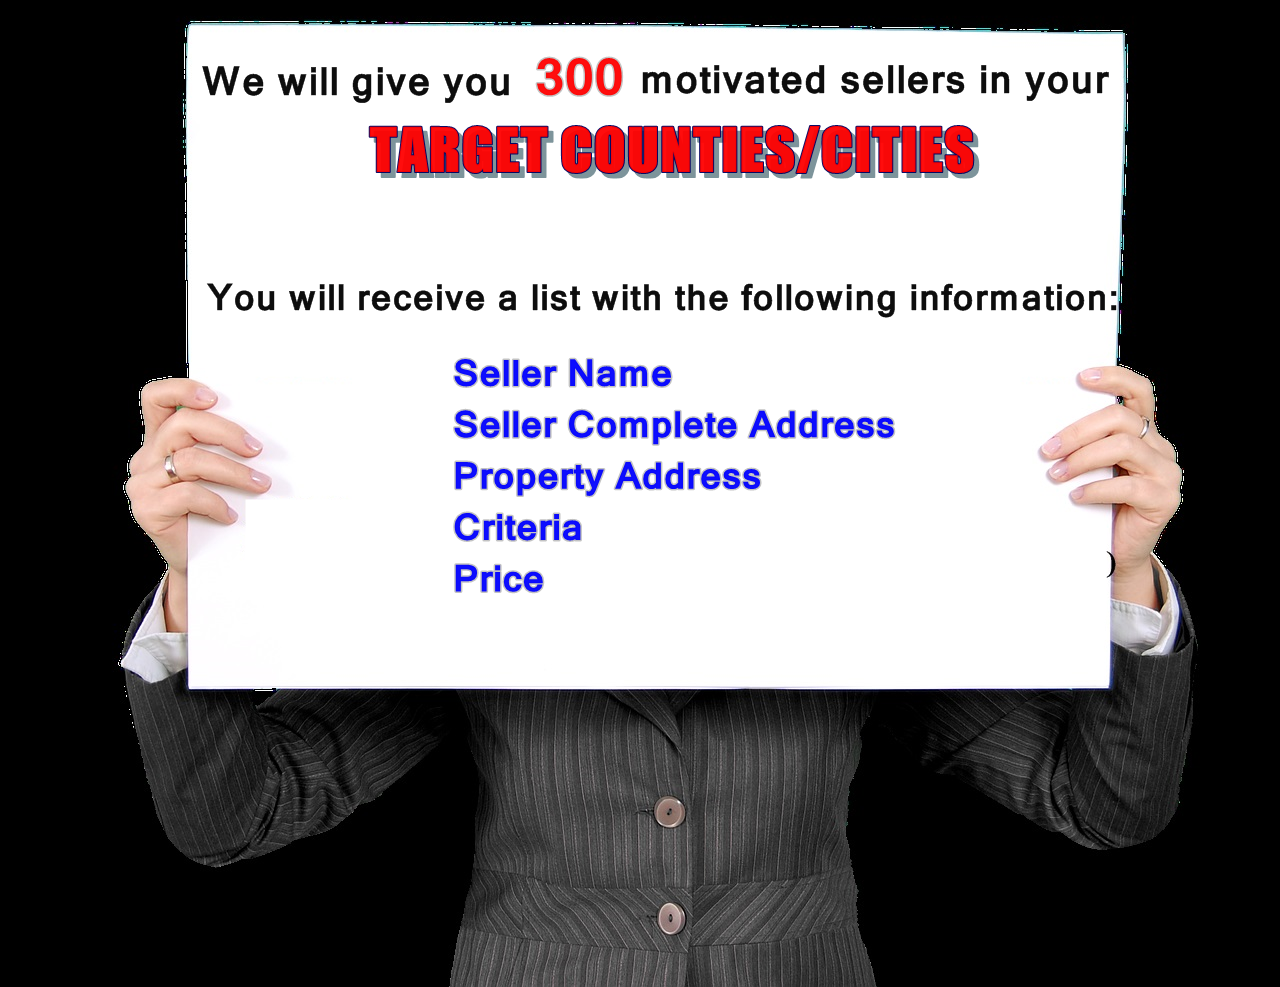 Research And Give 400 Real Estate Motivated Sellers And More